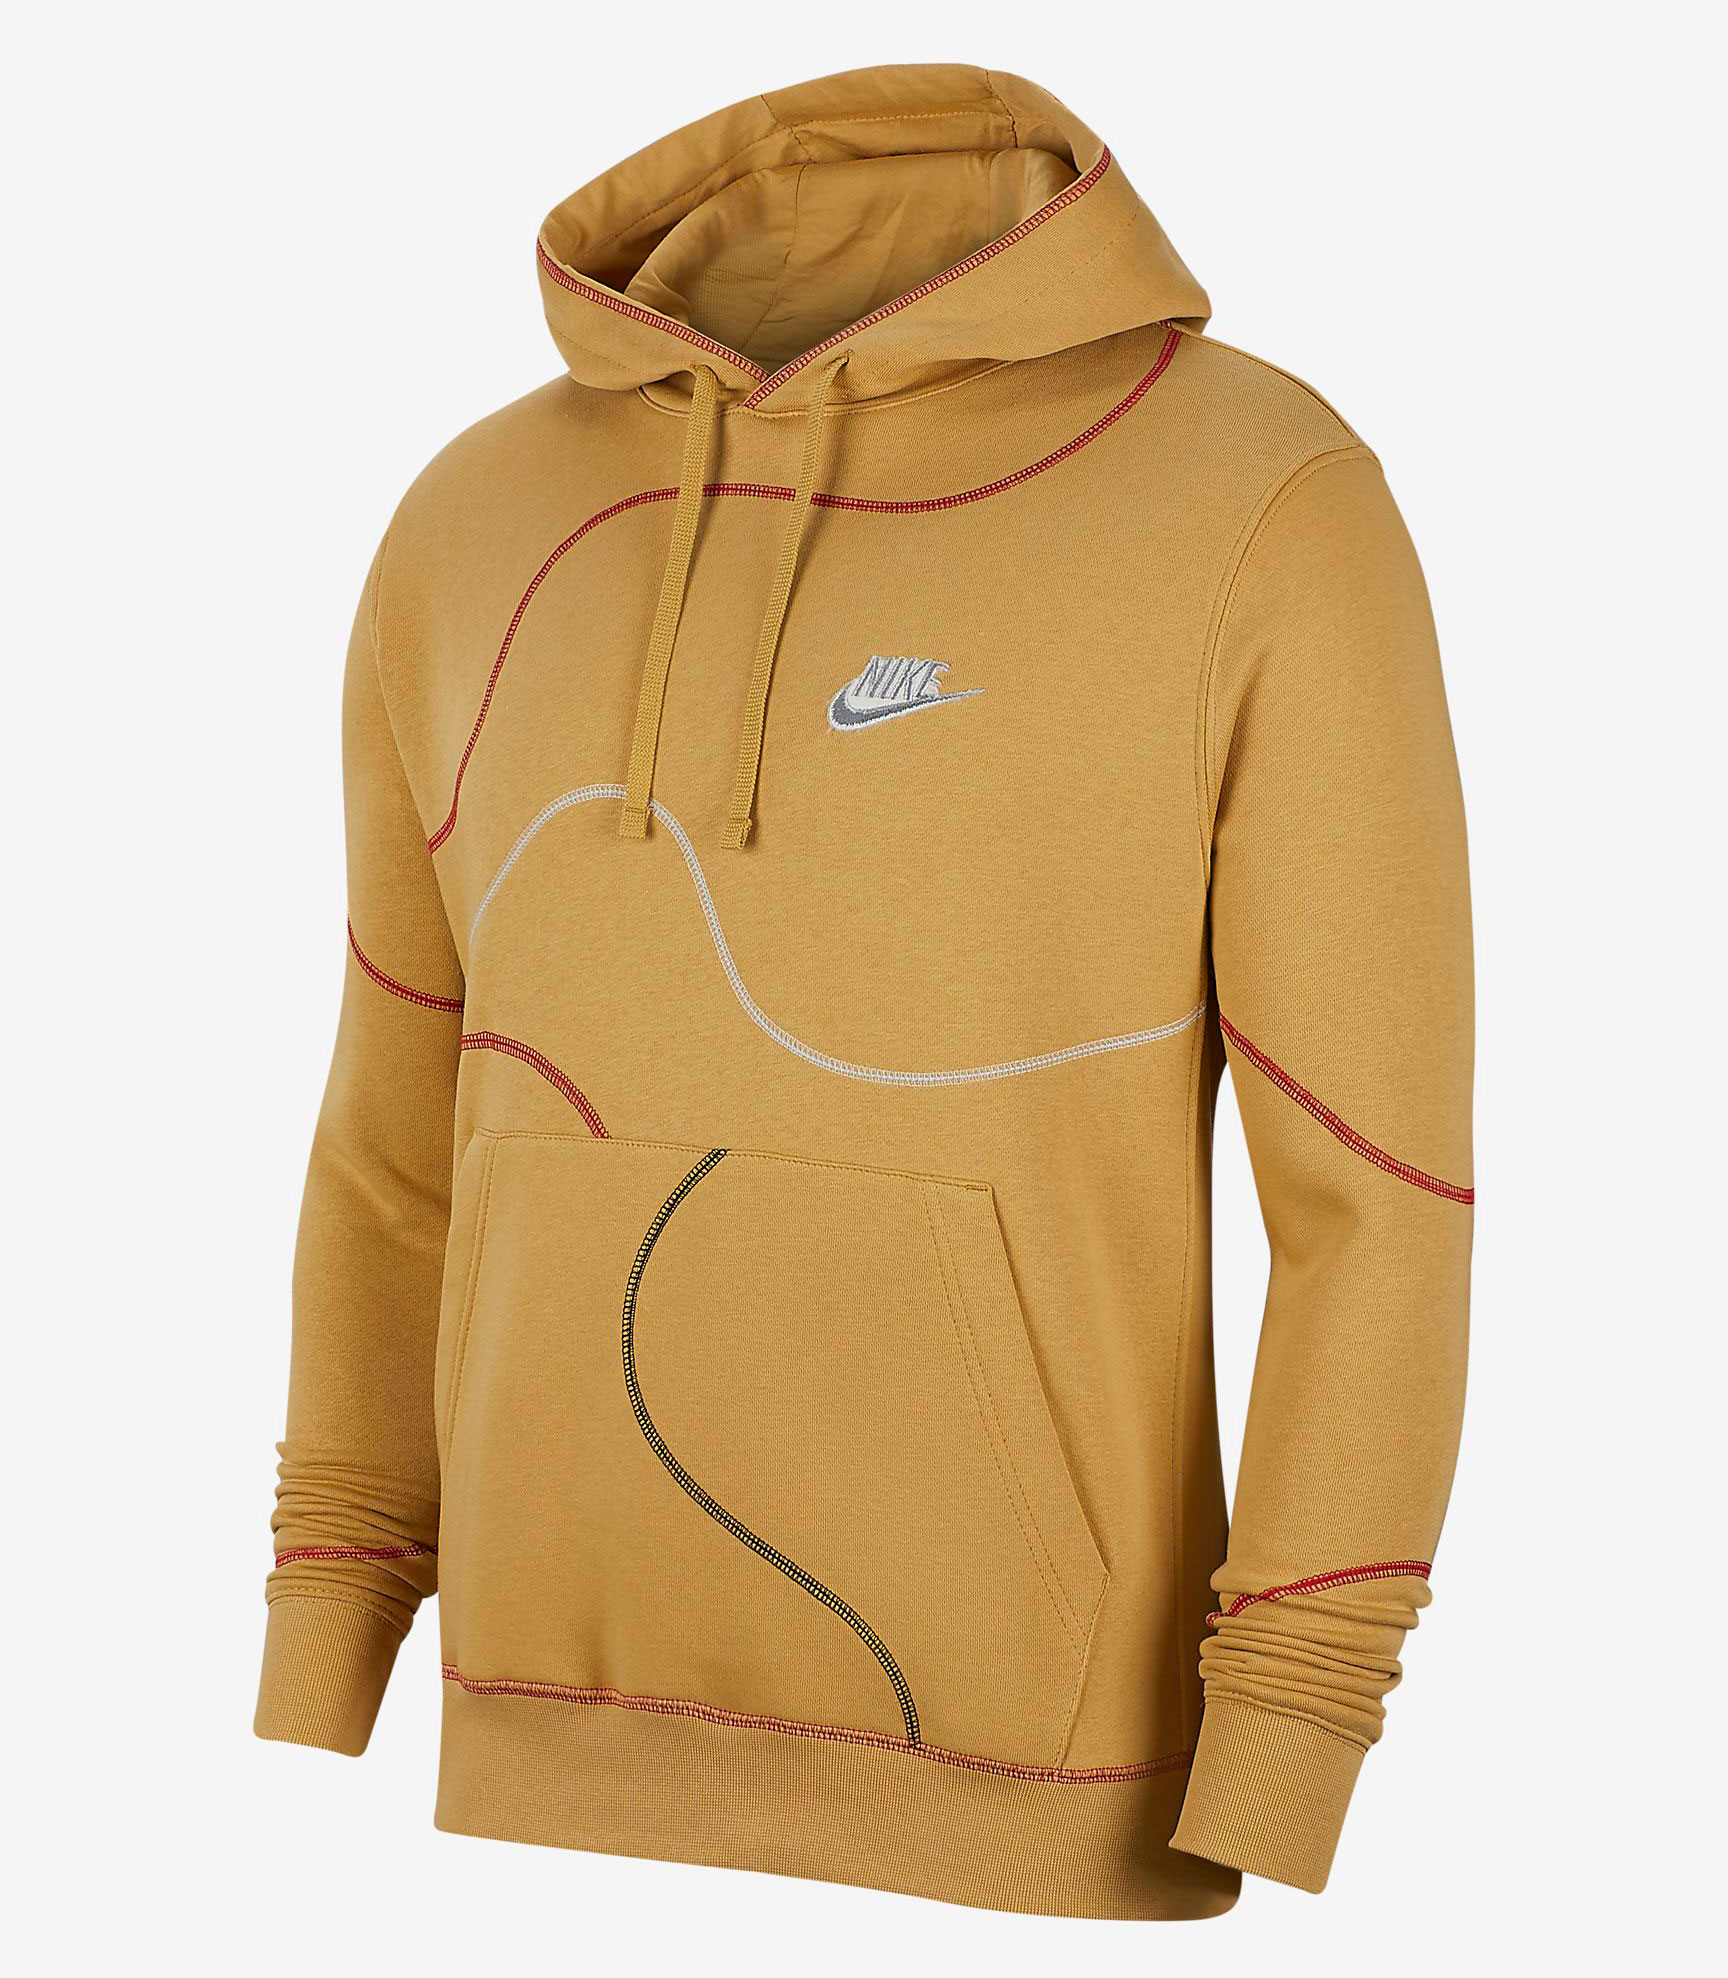 nike-inside-out-hoodie-gold-beige